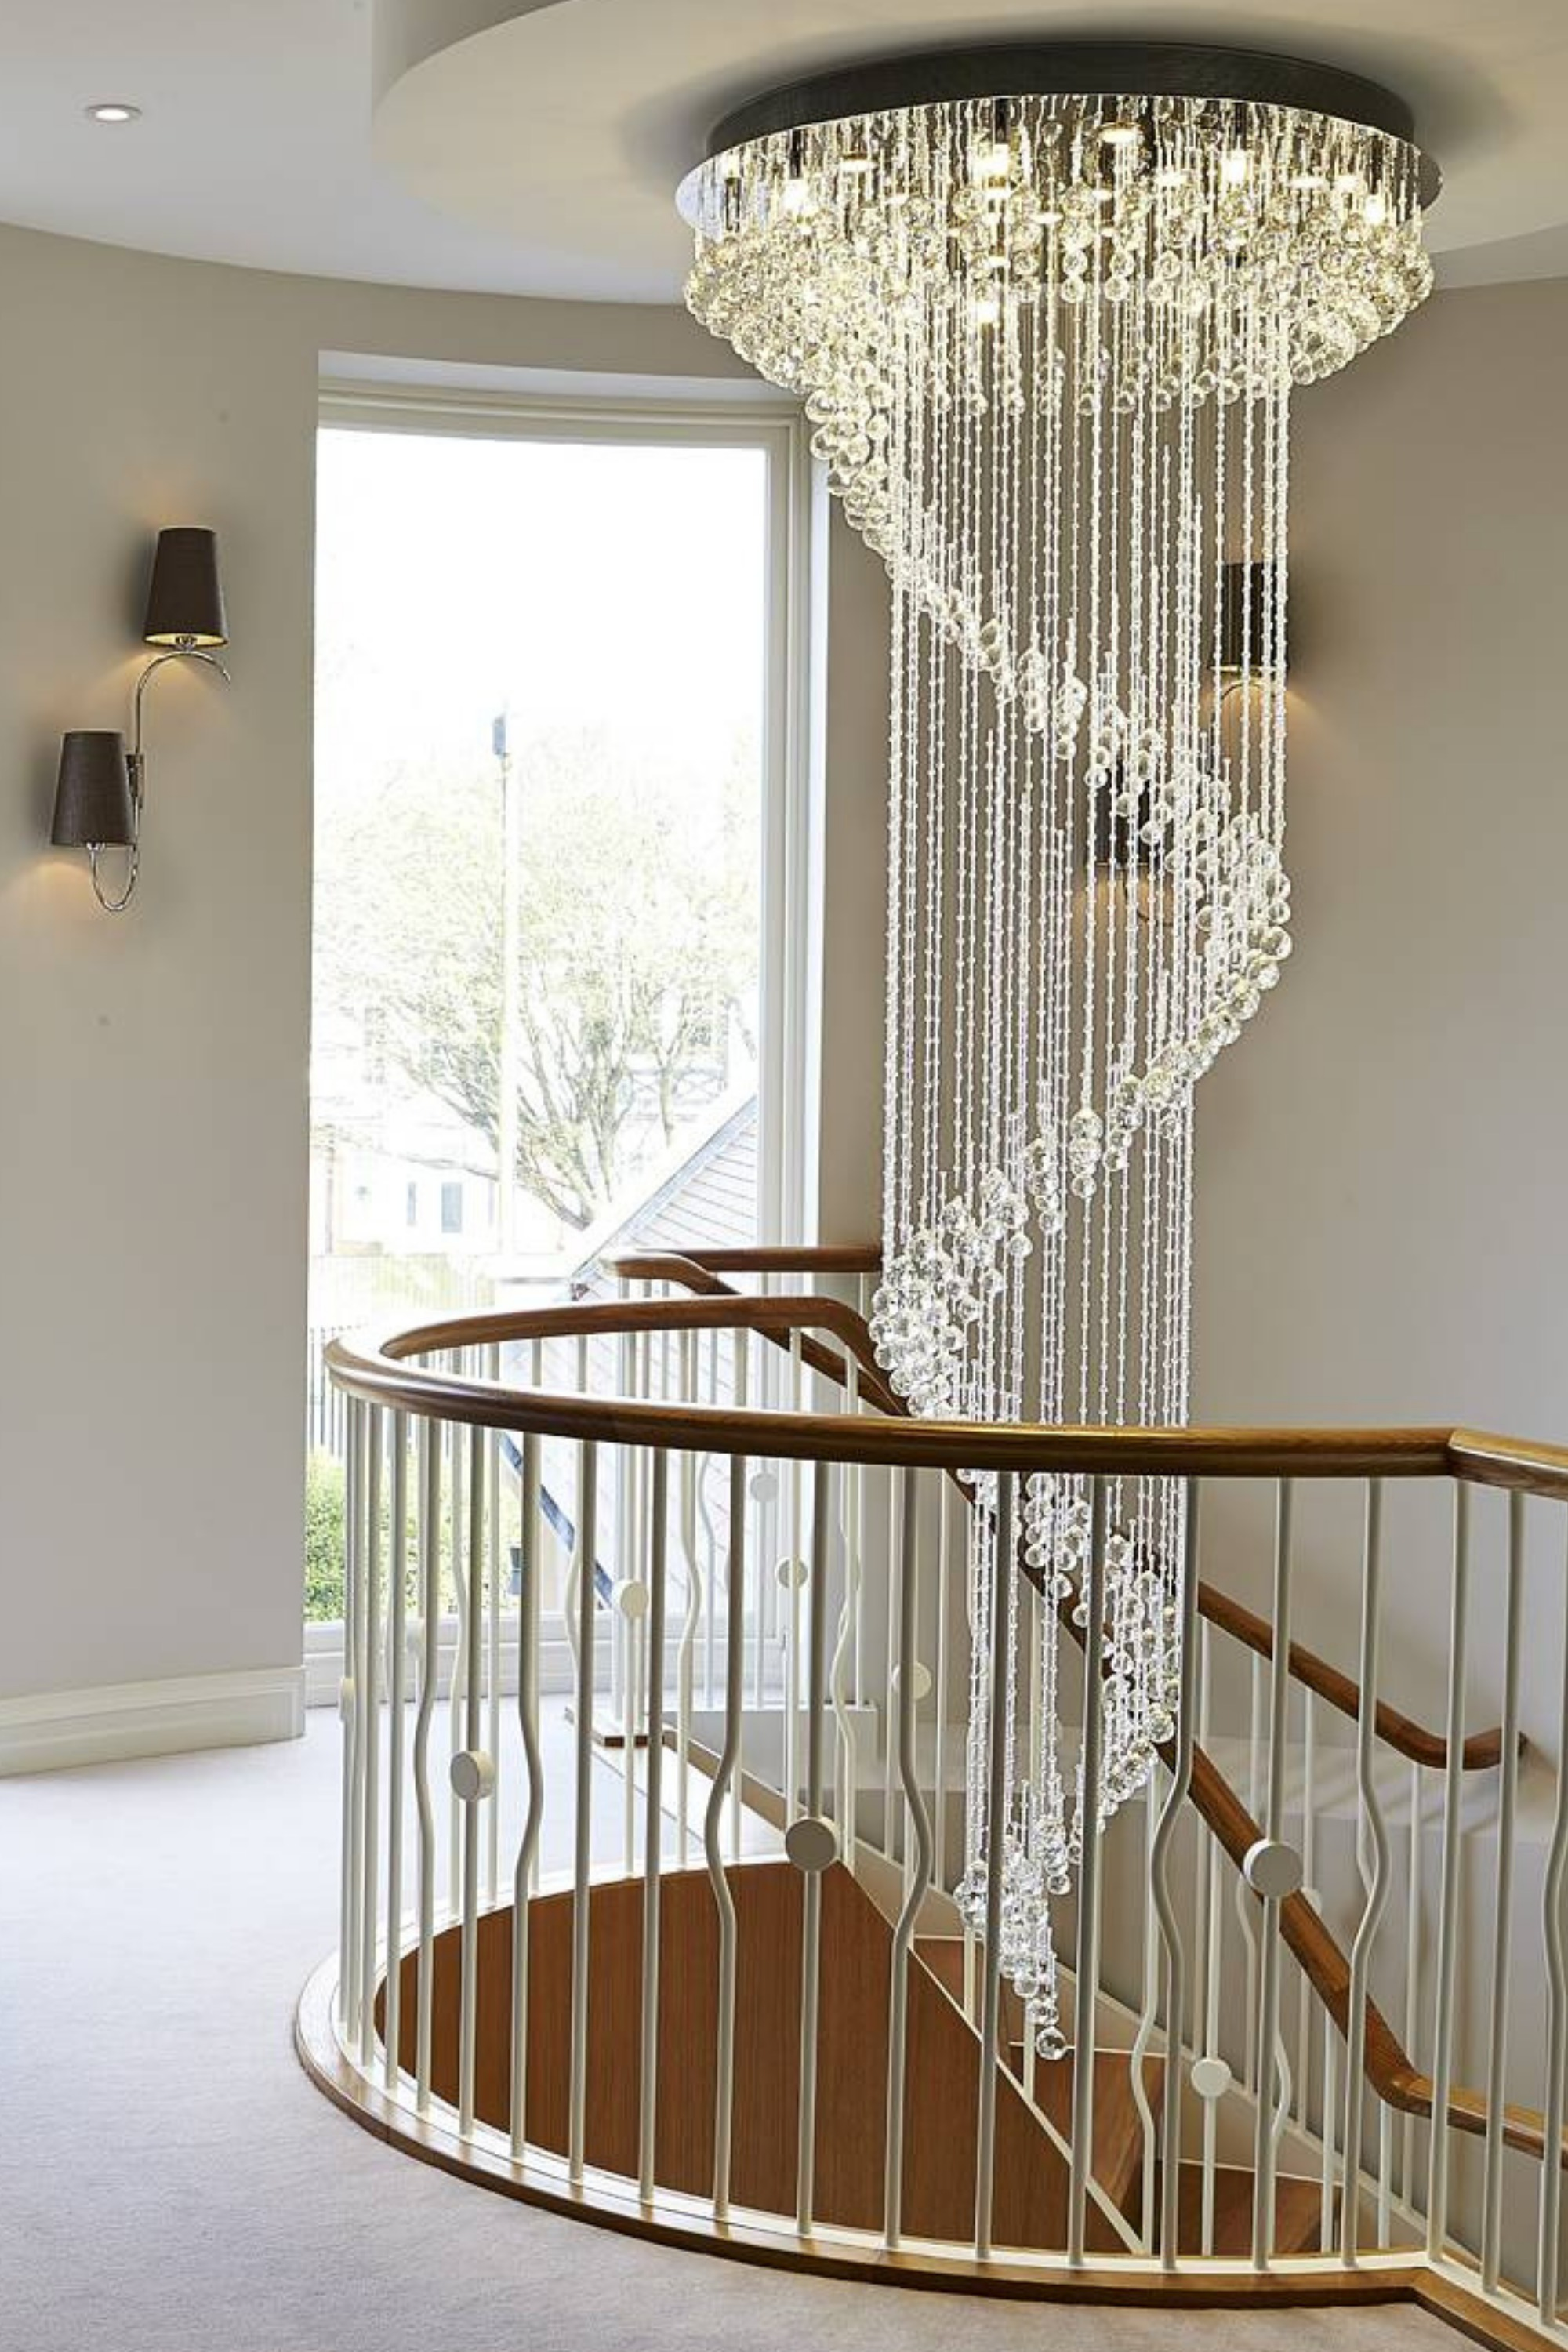 Balustrade on curved stair